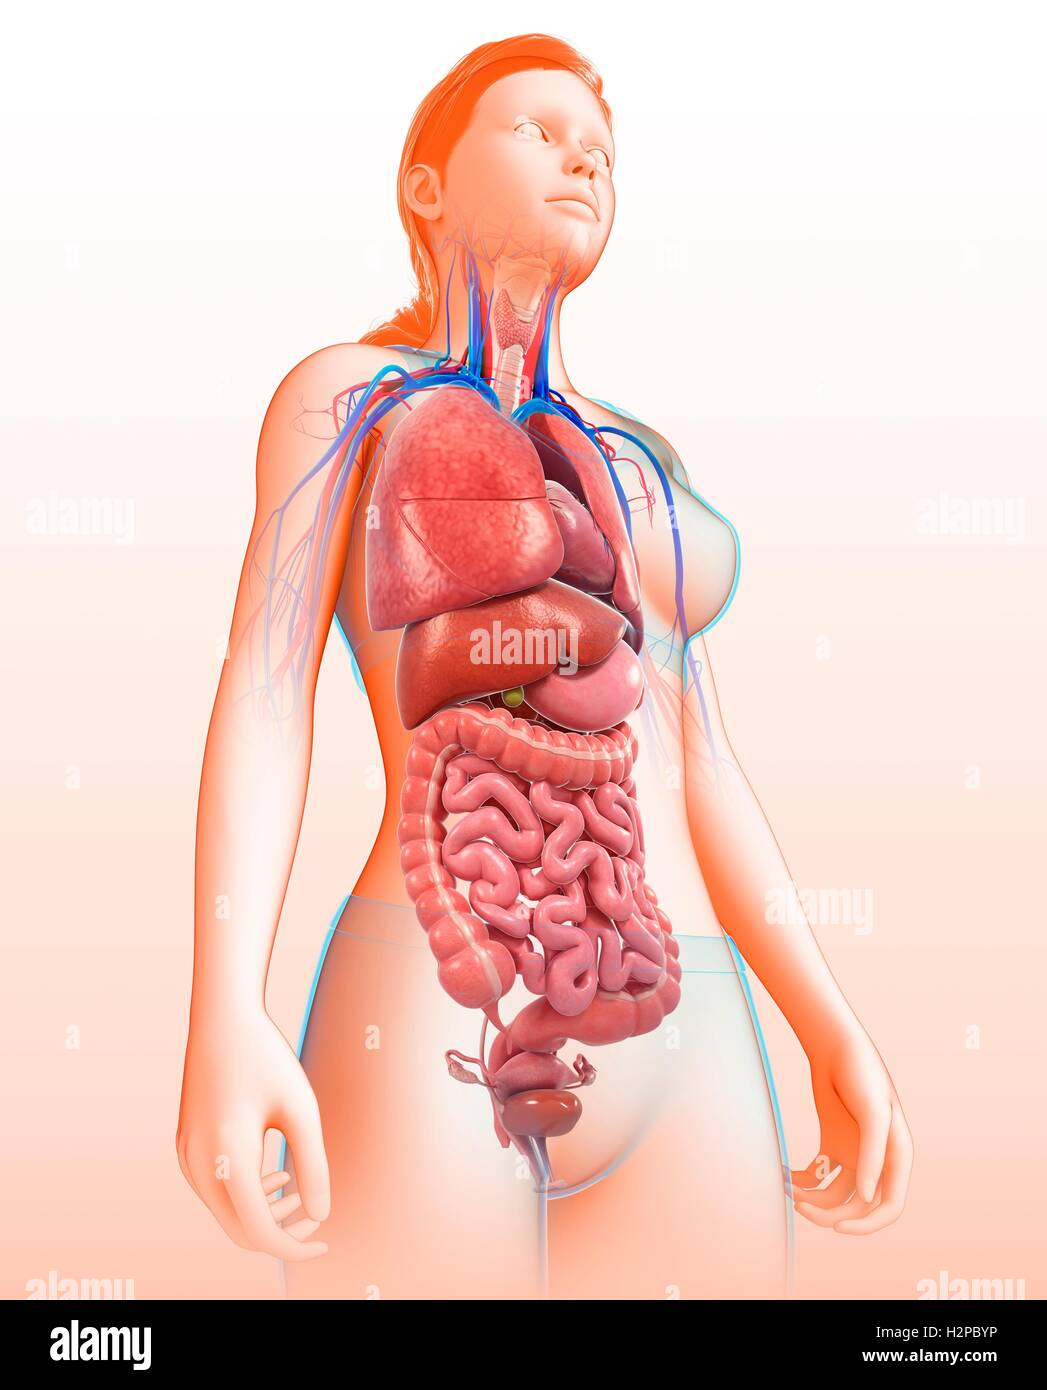 Illustration of female body organs Stock Photo: 122194234 - Alamy